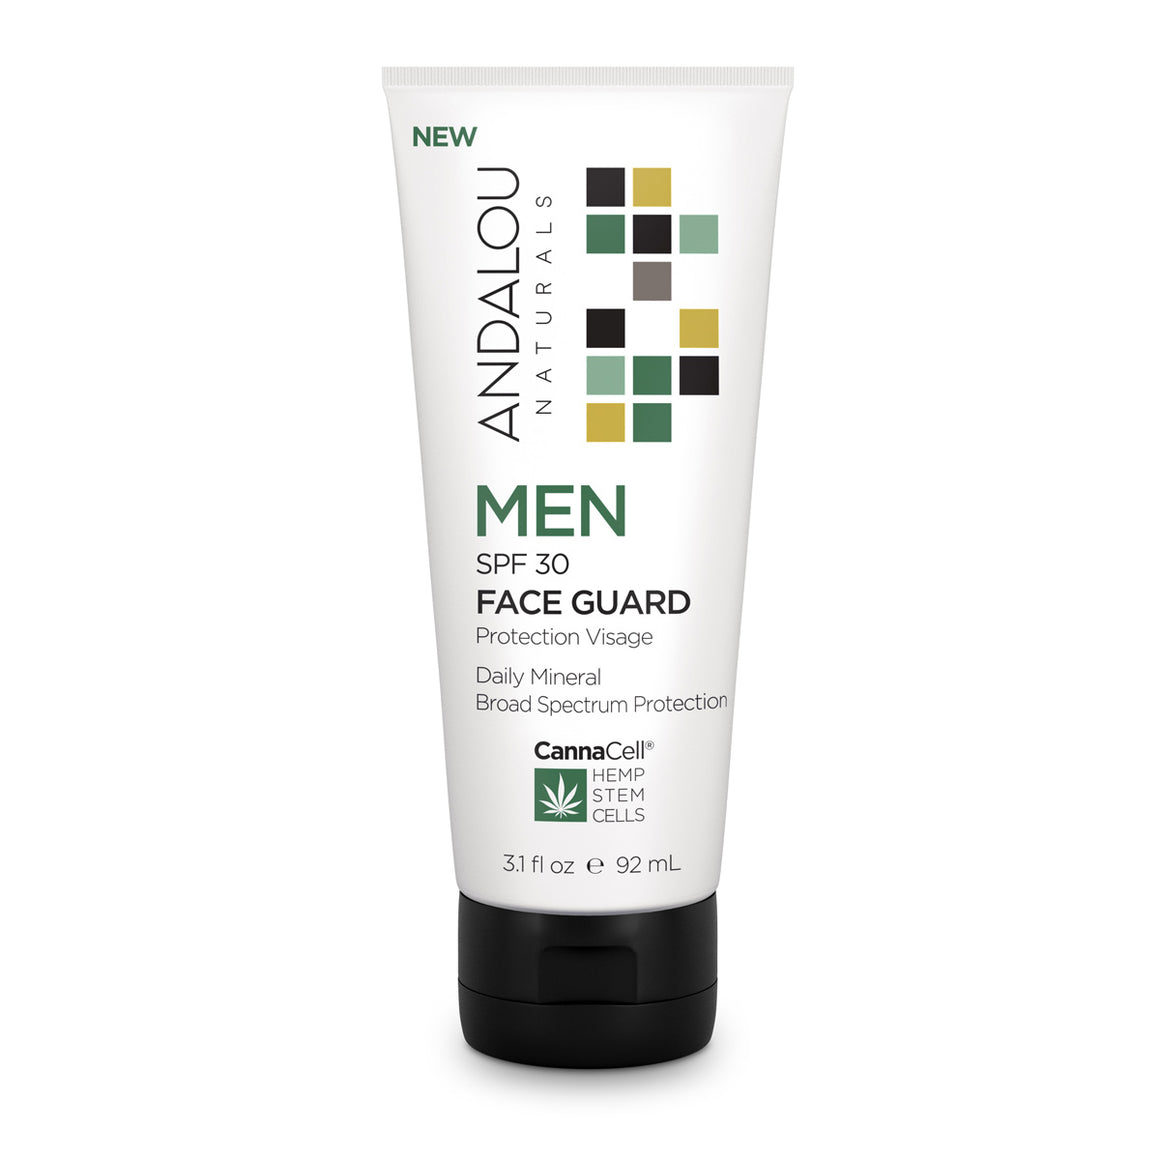 MEN SPF 30 Face Guard